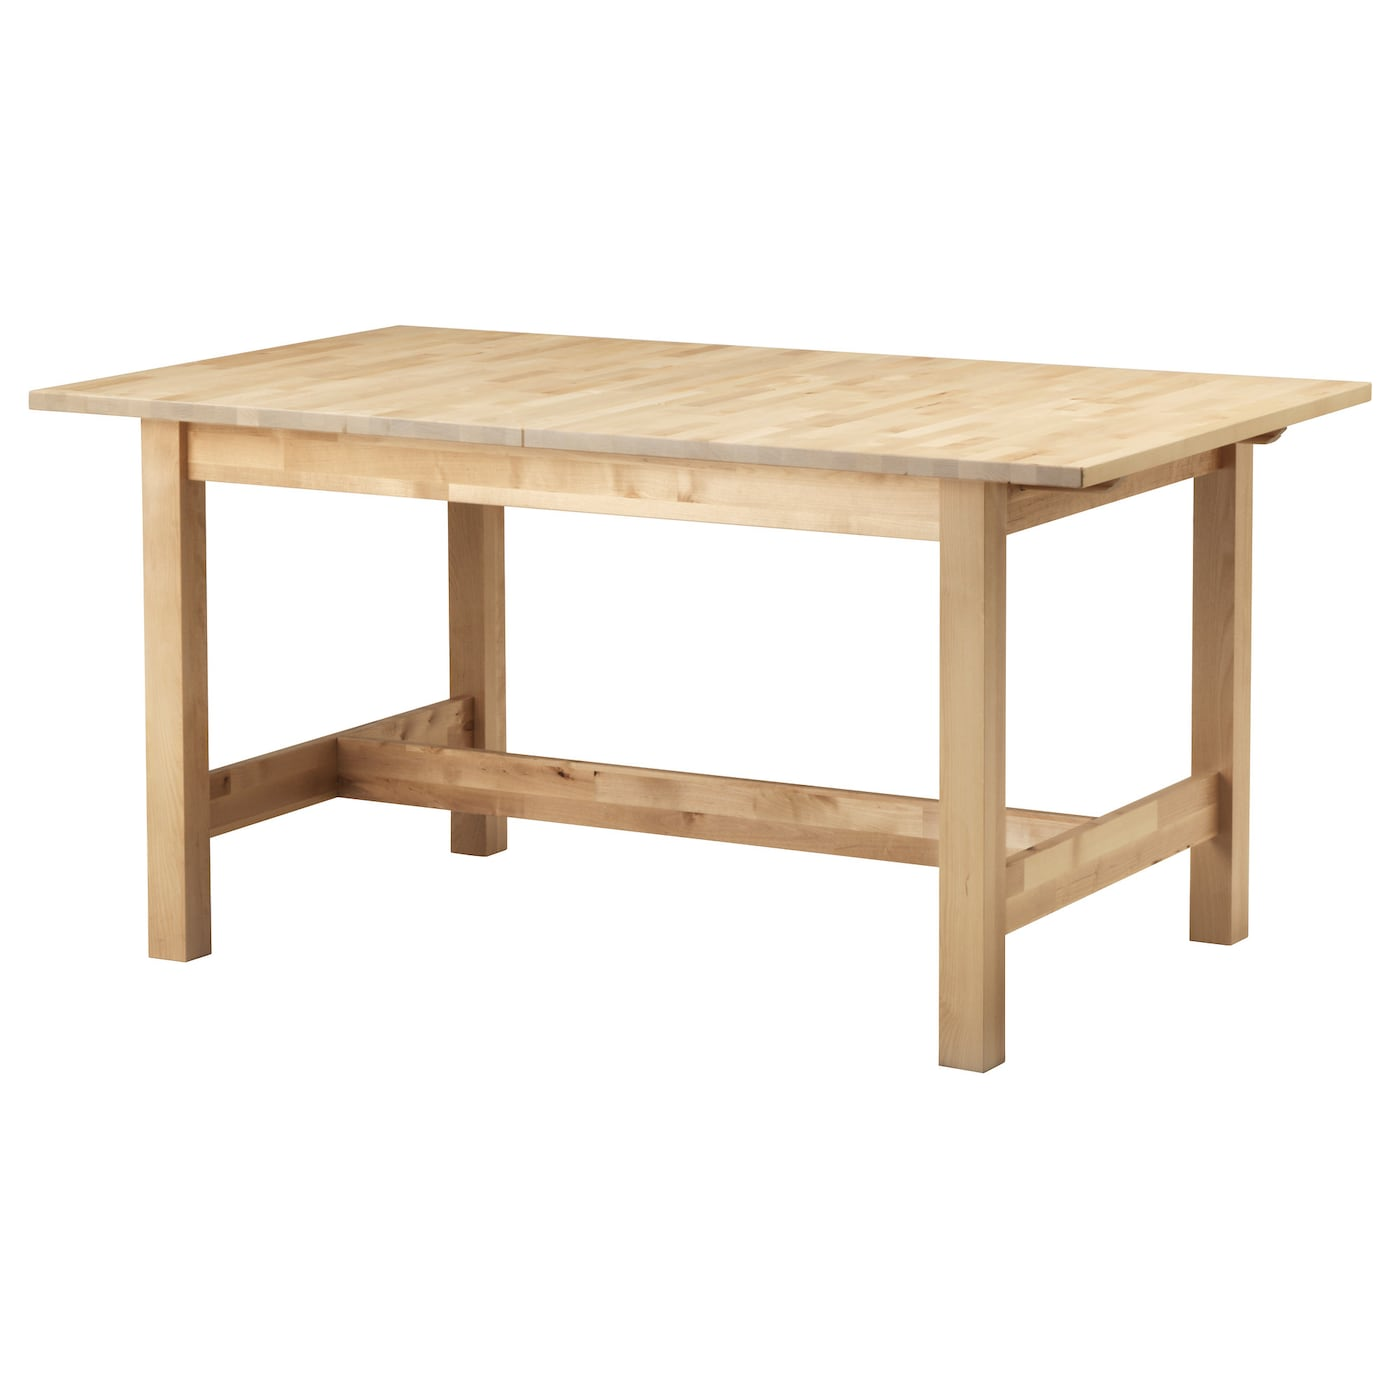 NORDEN Extendable table Birch 155/210x90 cm - IKEA